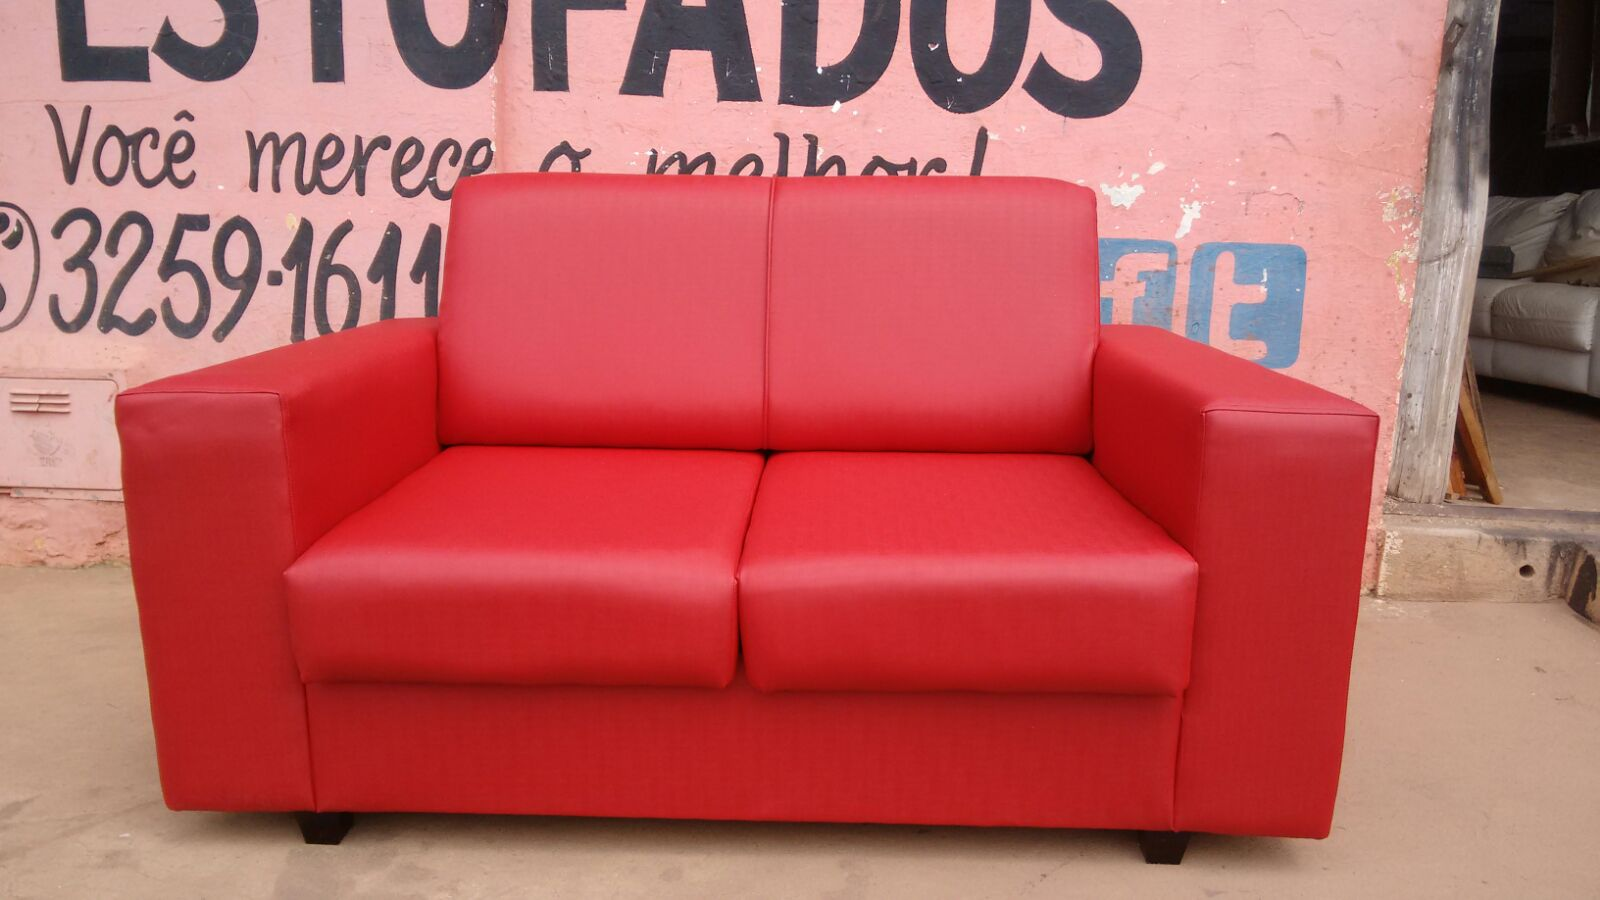 sofa seda sintetica kennedy leather restauração de estofados